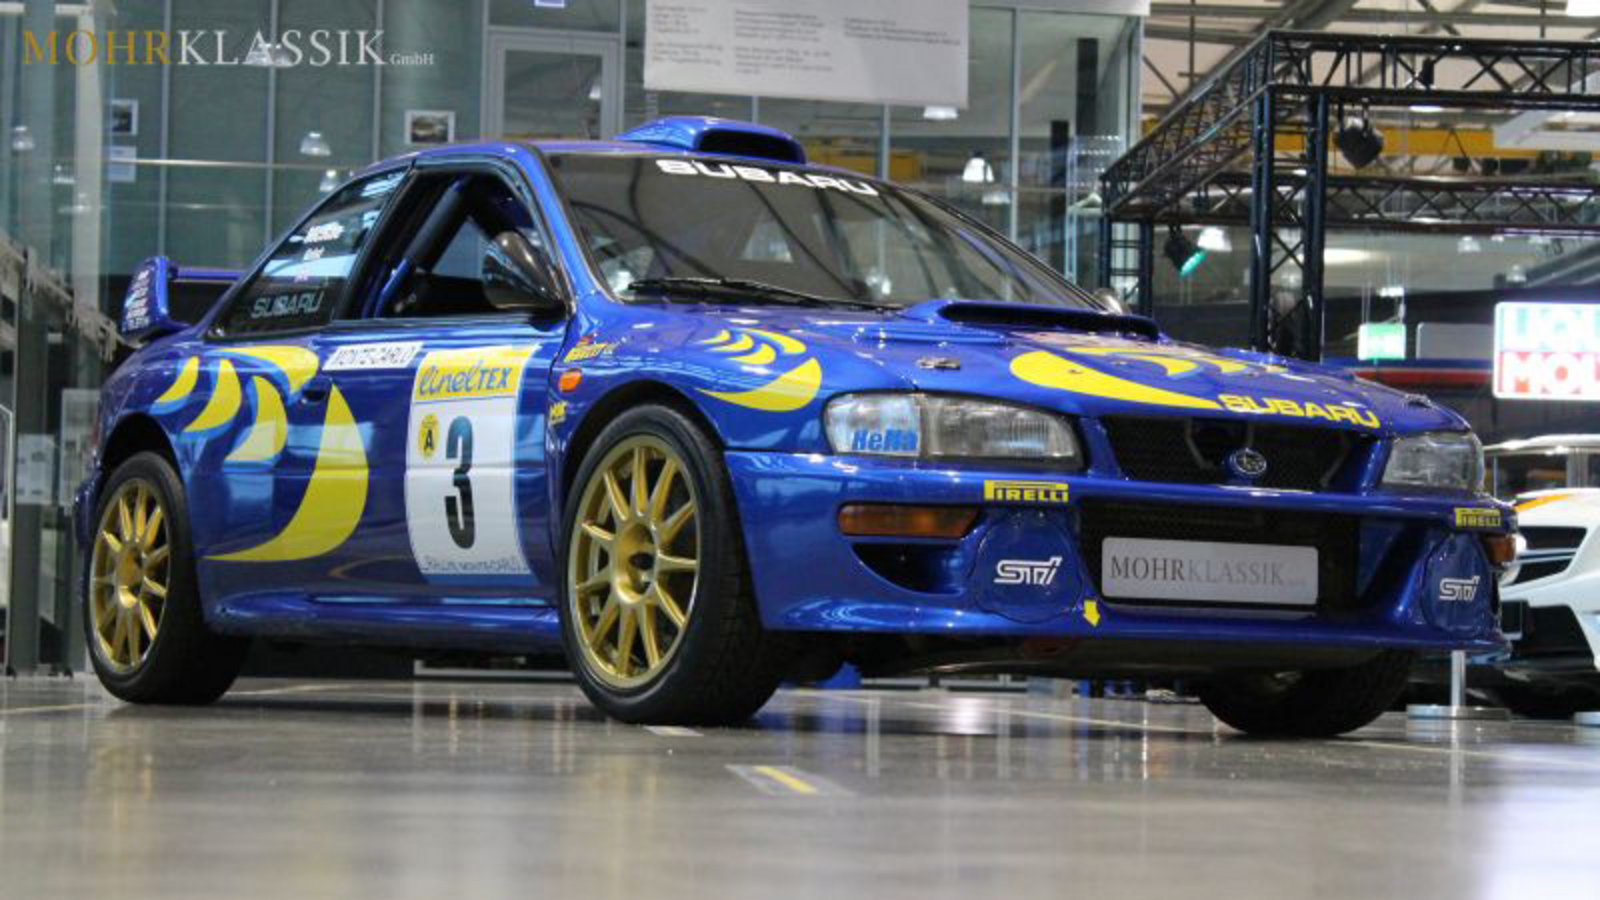 colin mcrae 39 s 1997 subaru wrc imprezza for sale news top speed. Black Bedroom Furniture Sets. Home Design Ideas